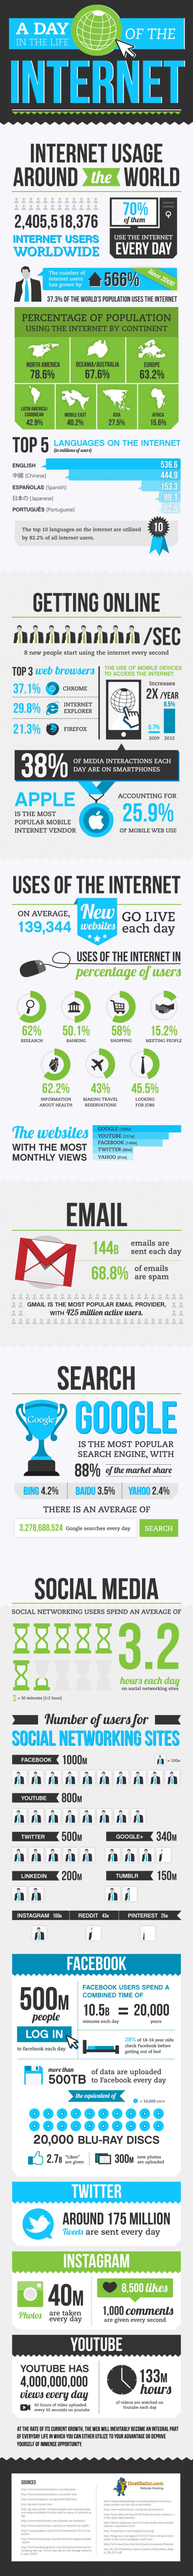 A Day in the Life of the Internet - #infographic